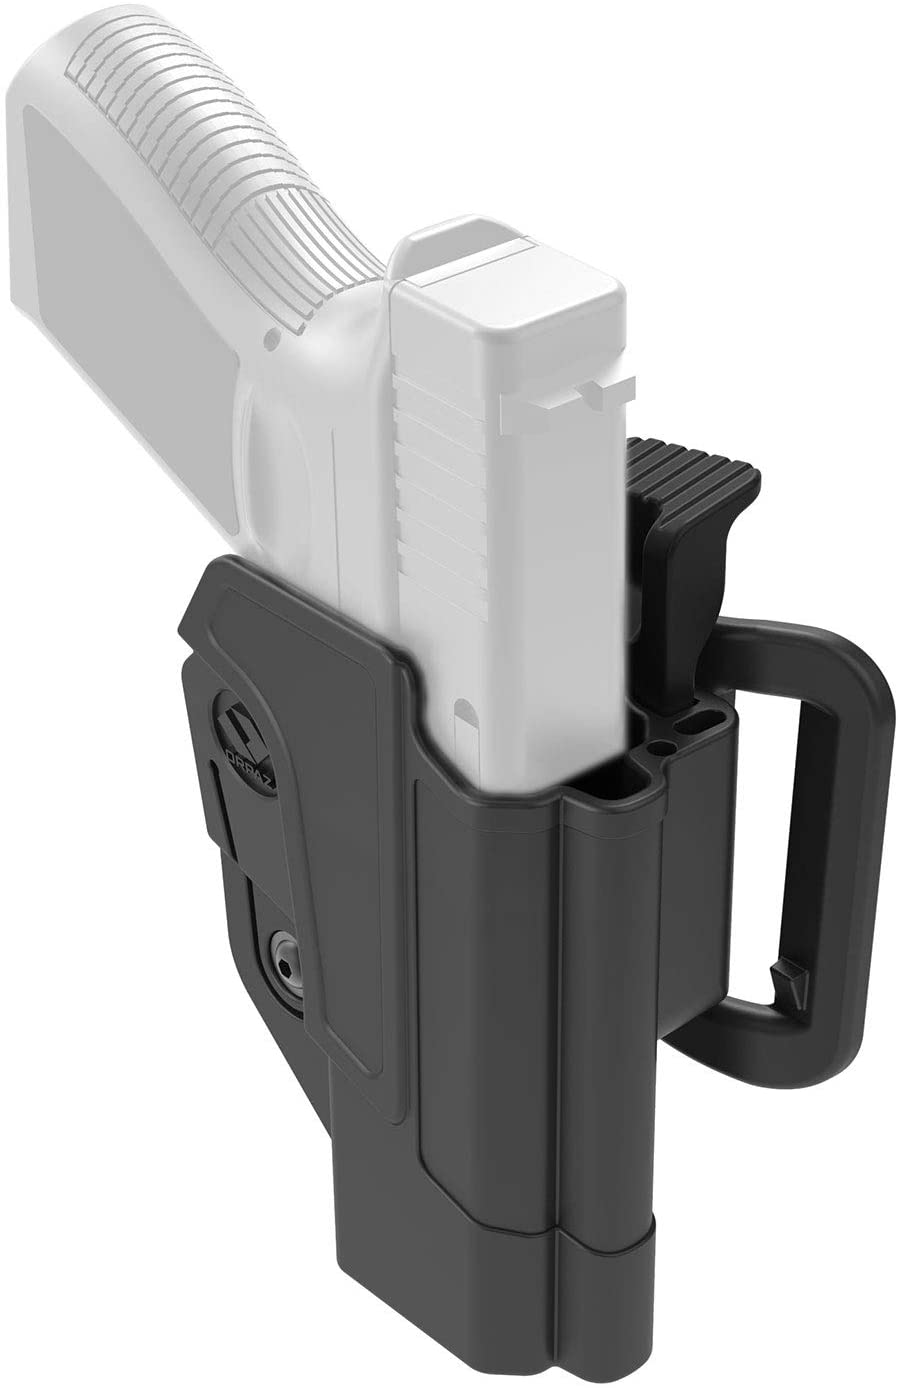 Orpaz Gun Holster for The S&W M&P 9mm Holster and S&W M&P 40 Holster